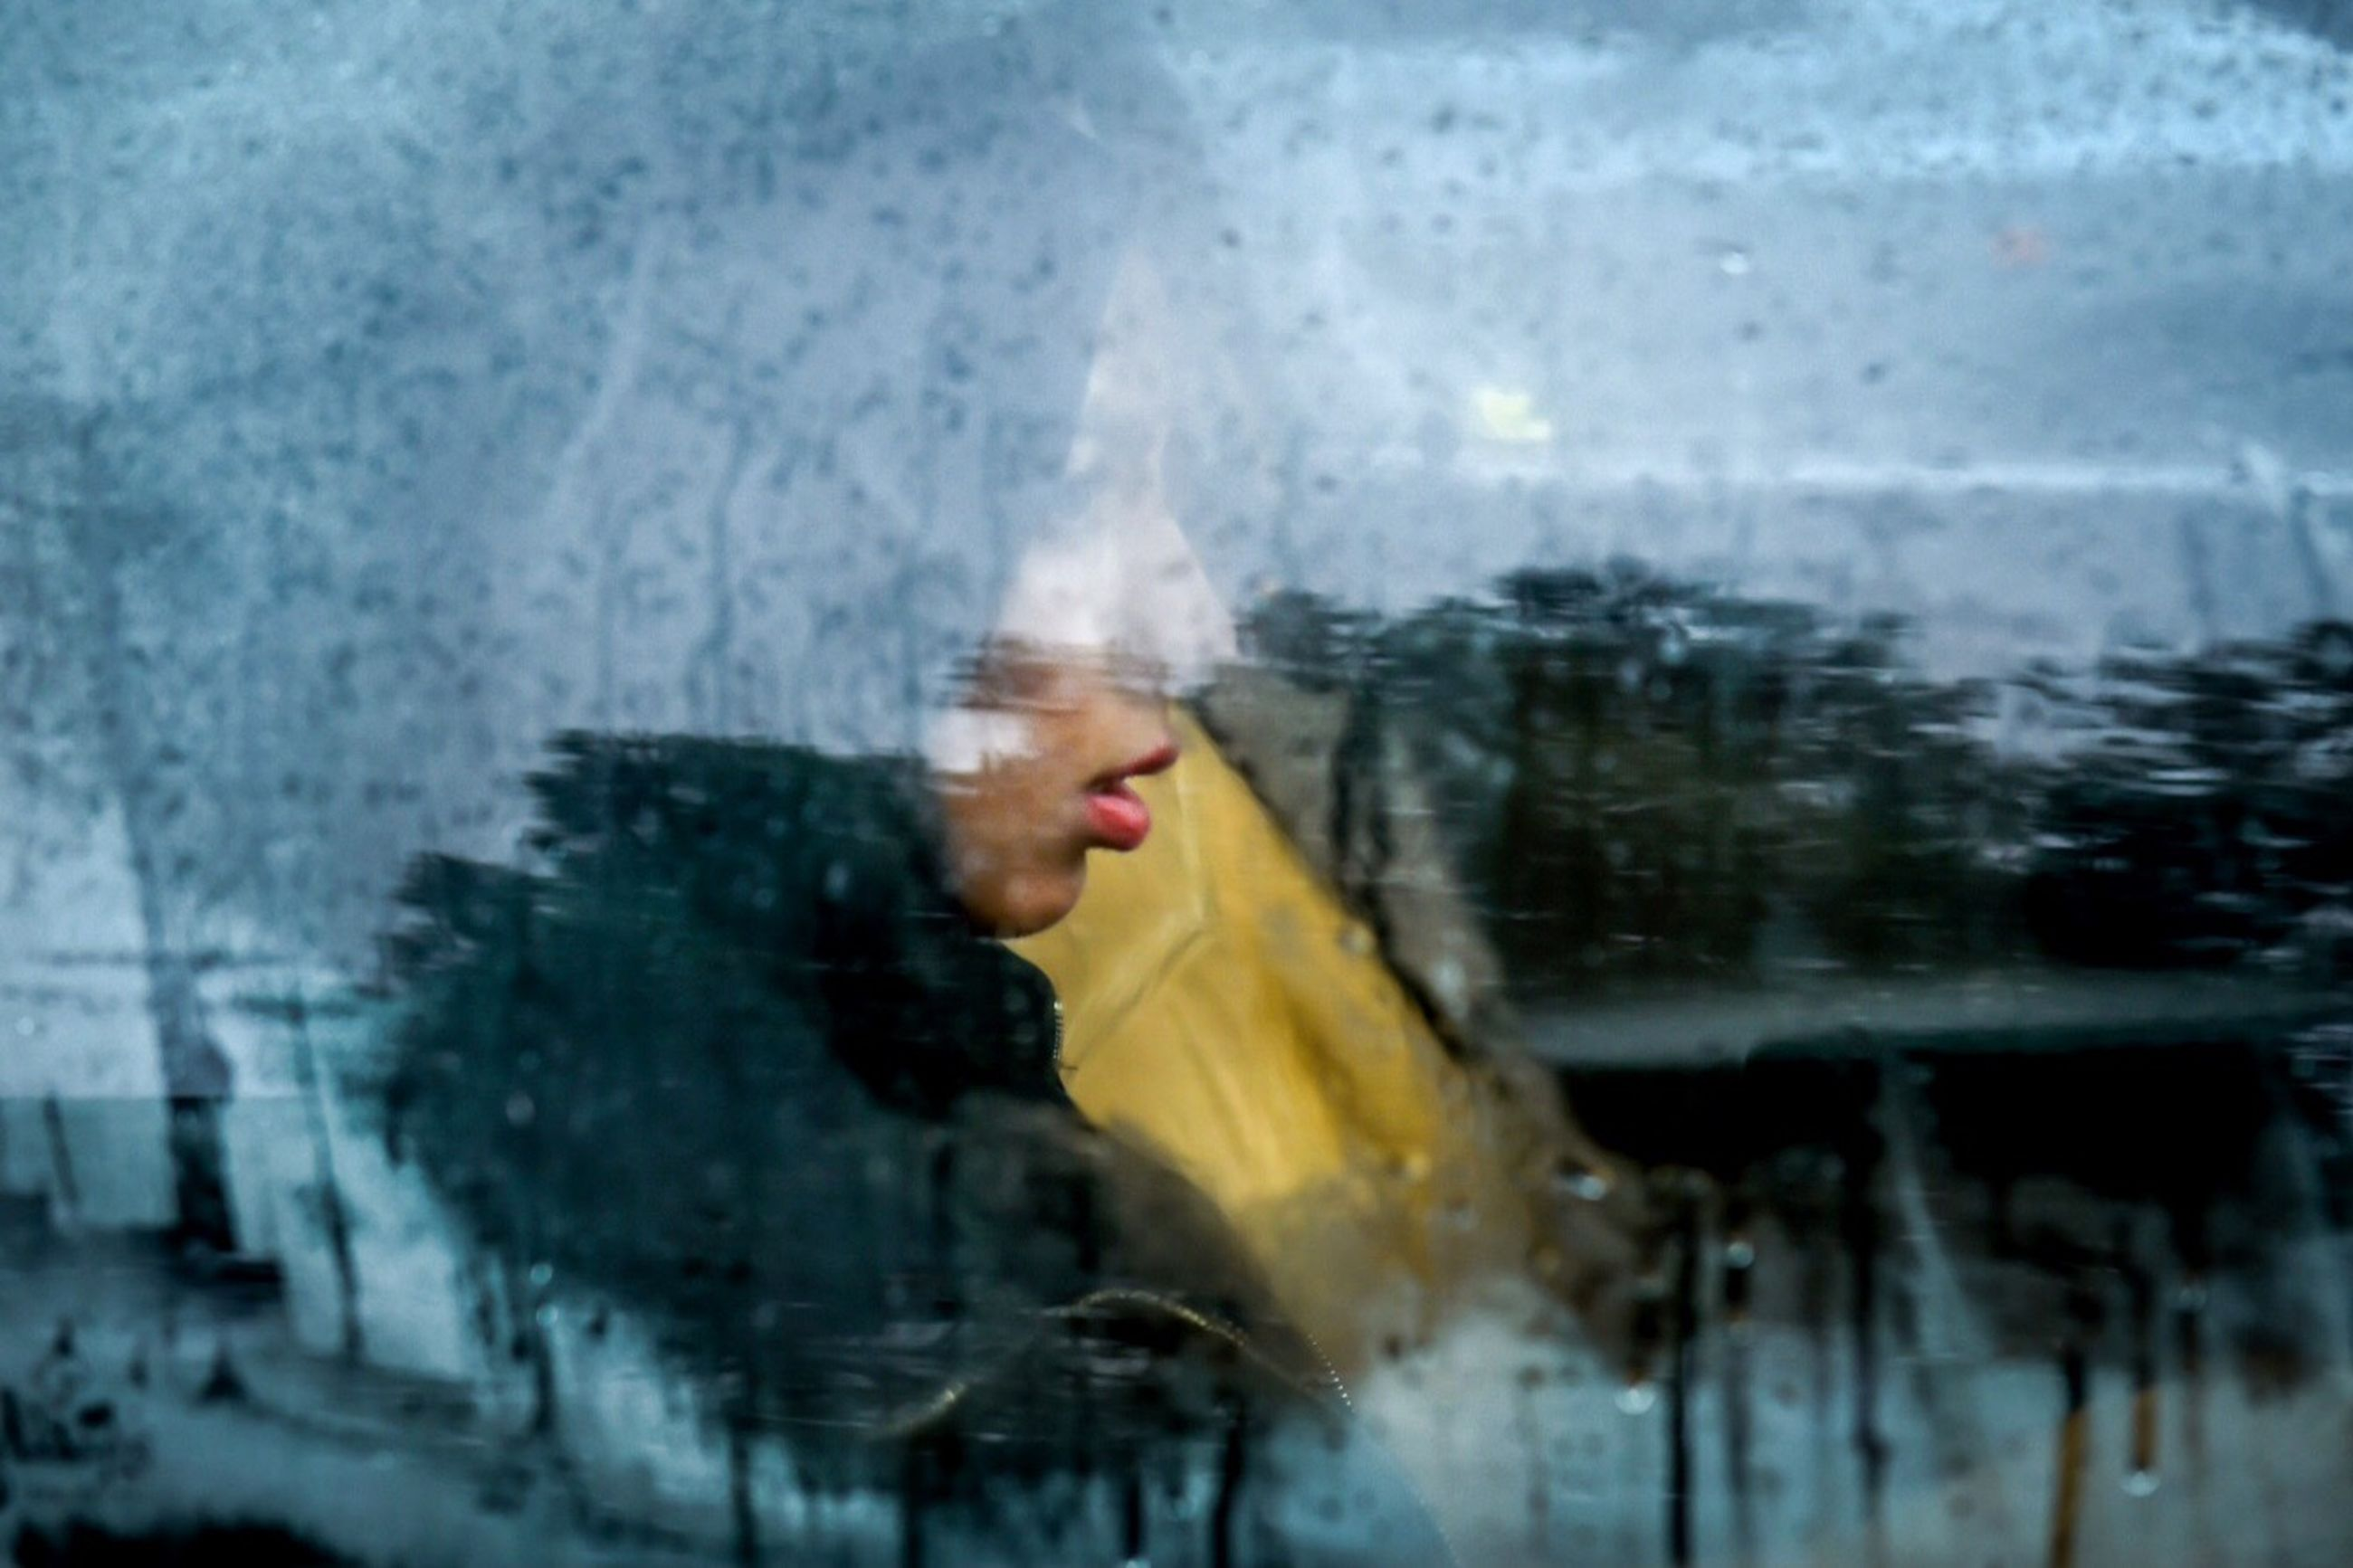 reflection, one person, real people, water, animal themes, one animal, outdoors, day, cold temperature, close-up, young adult